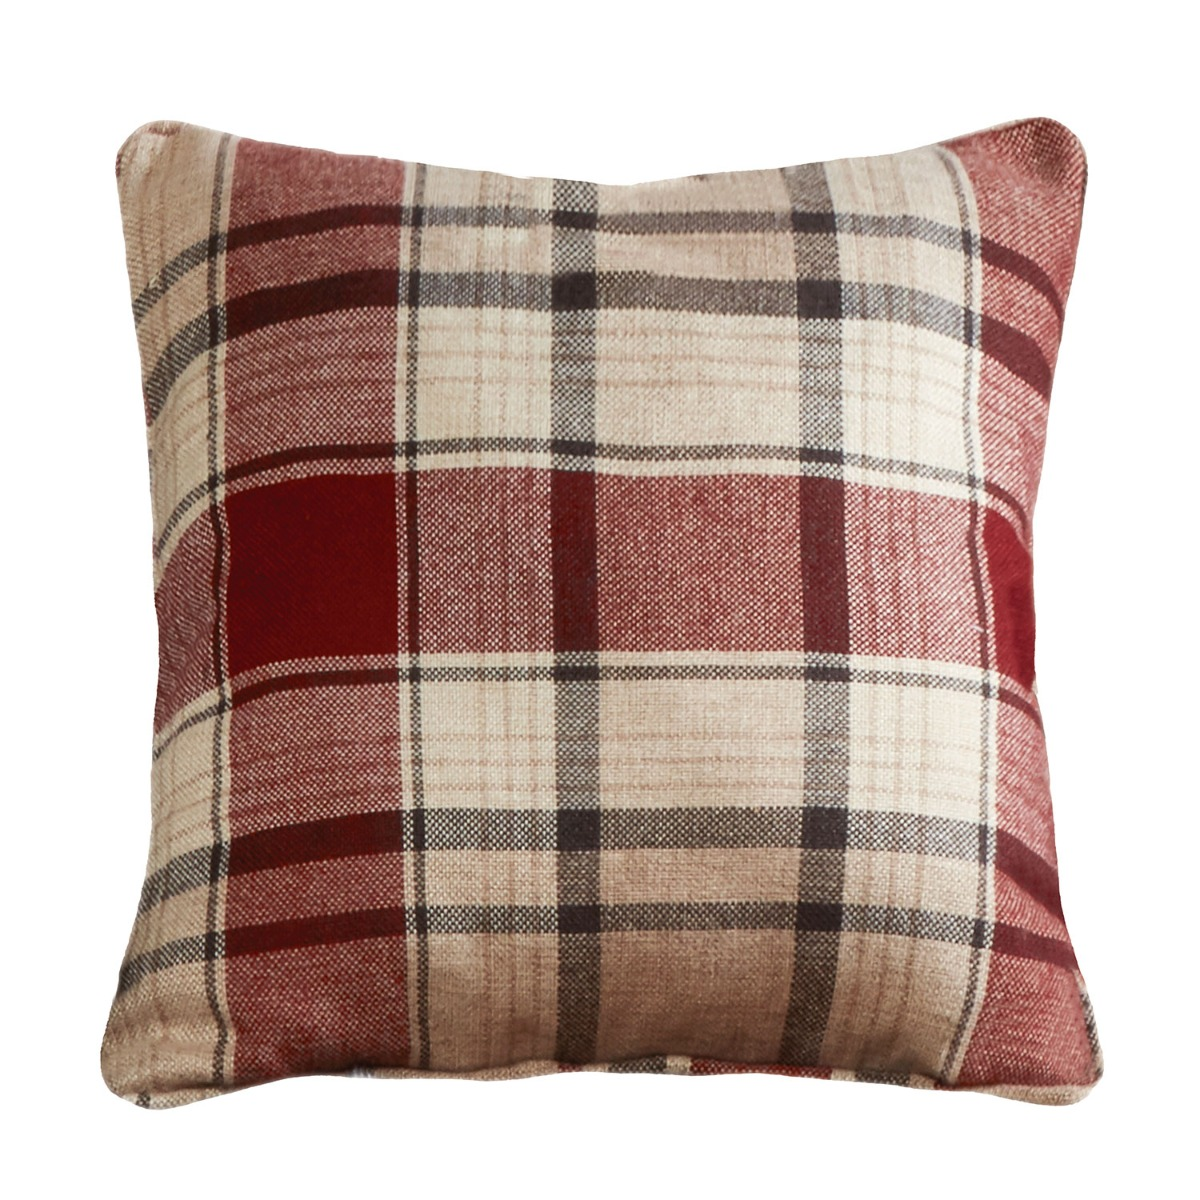 Balmoral Red Check Filled Square Cushion